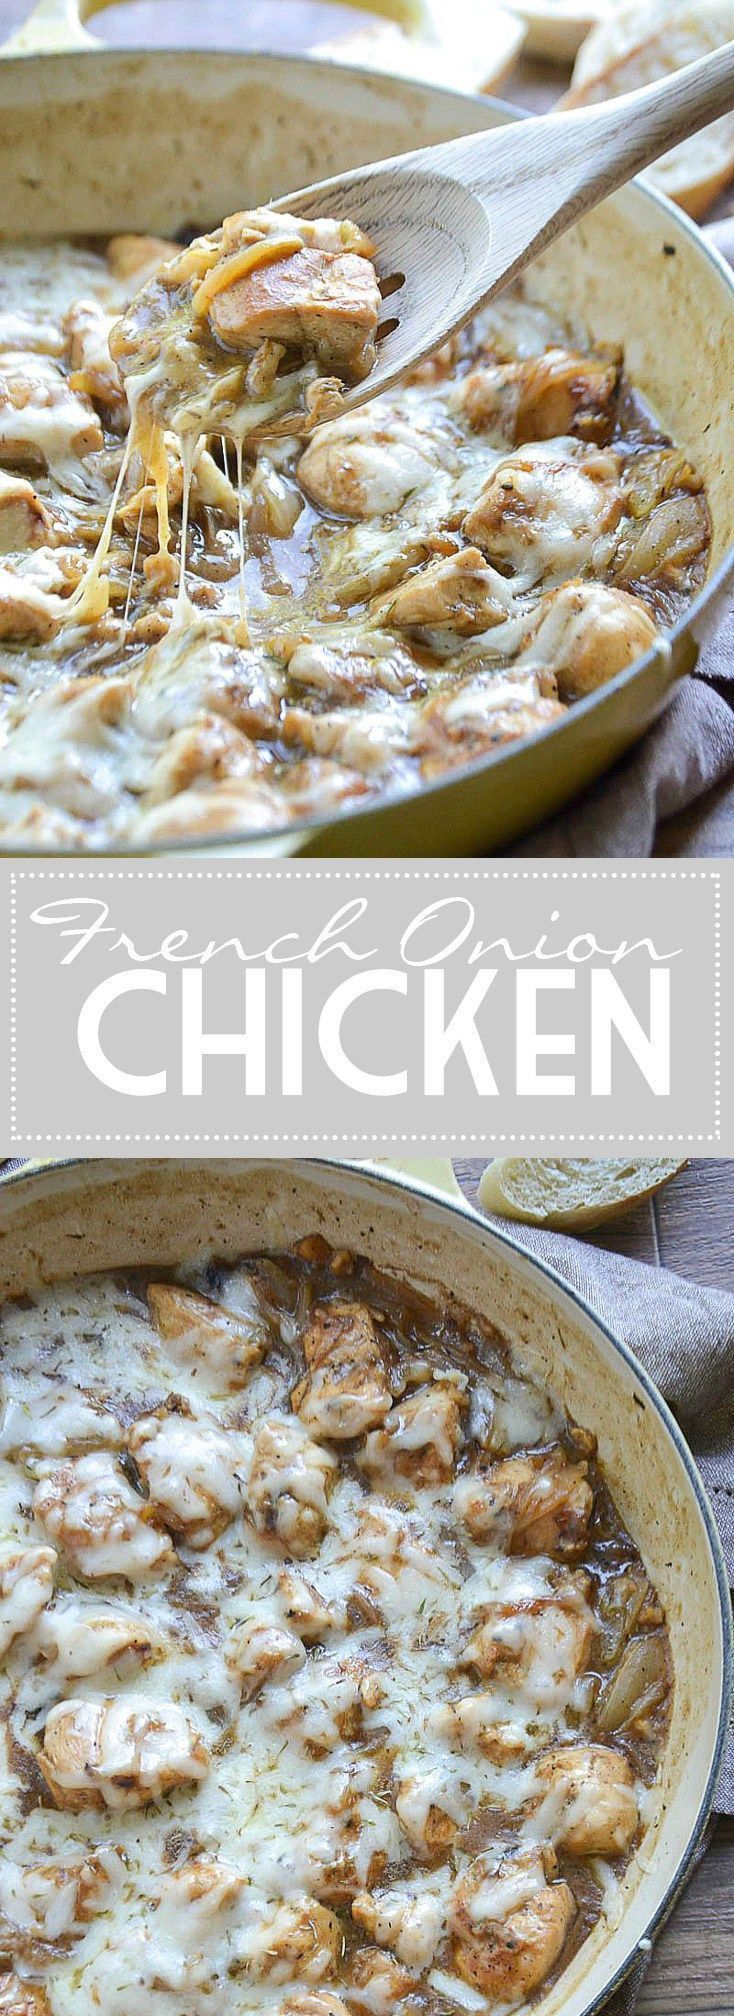 An easy recipe for French Onion Chicken - this took longer to make than recipes I normally go for, but it was worth it! We used whole chicken thighs instead of cubed chicken breast which gave it a richer flavor. I also swapped out Swiss cheese for mozzarella since I now Sean's not a fan. Served with buttered kluski noodles for a delicious comfort meal!